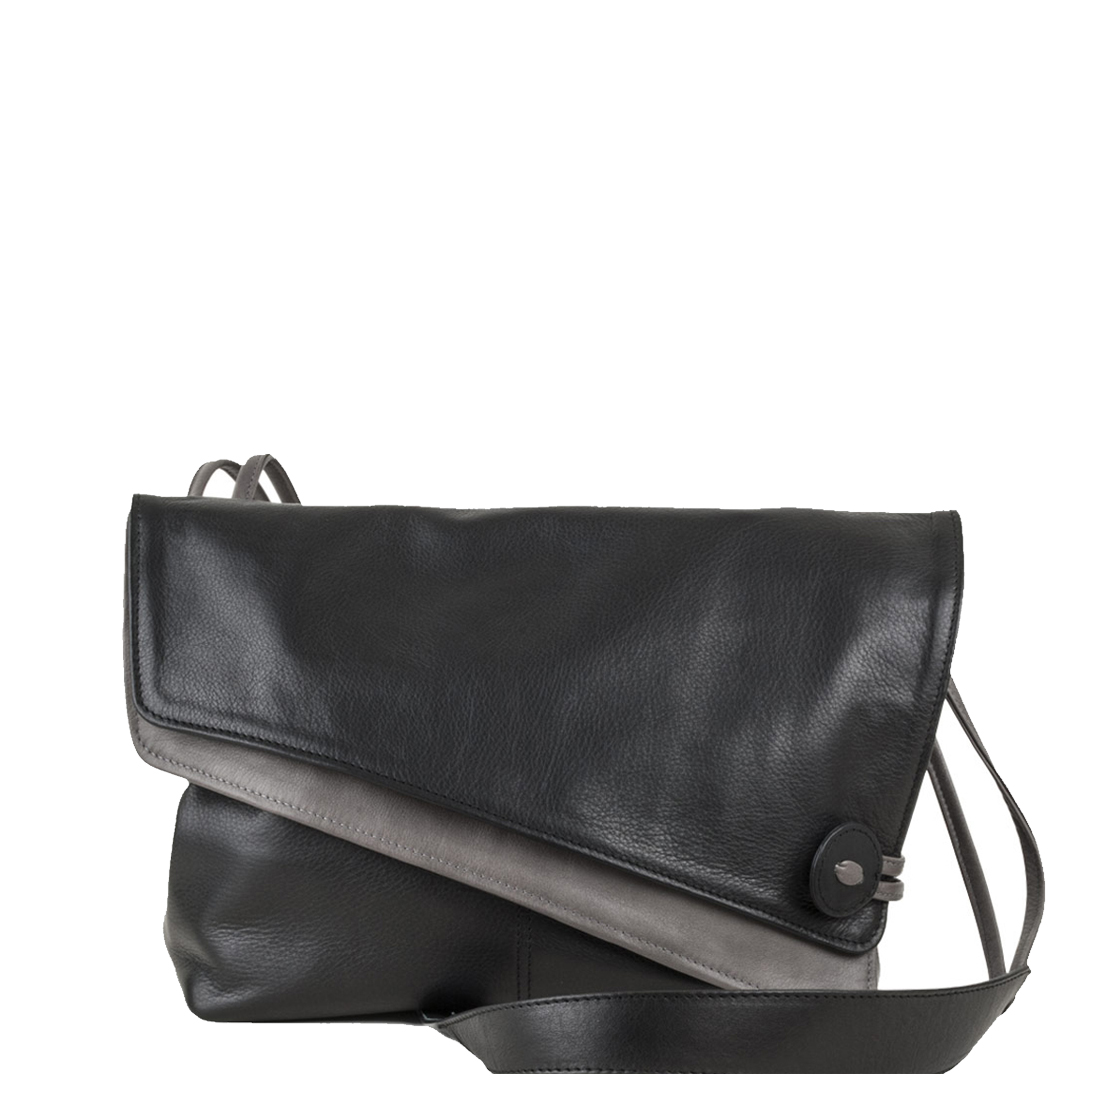 Lindsay Black Across Body Leather Bag